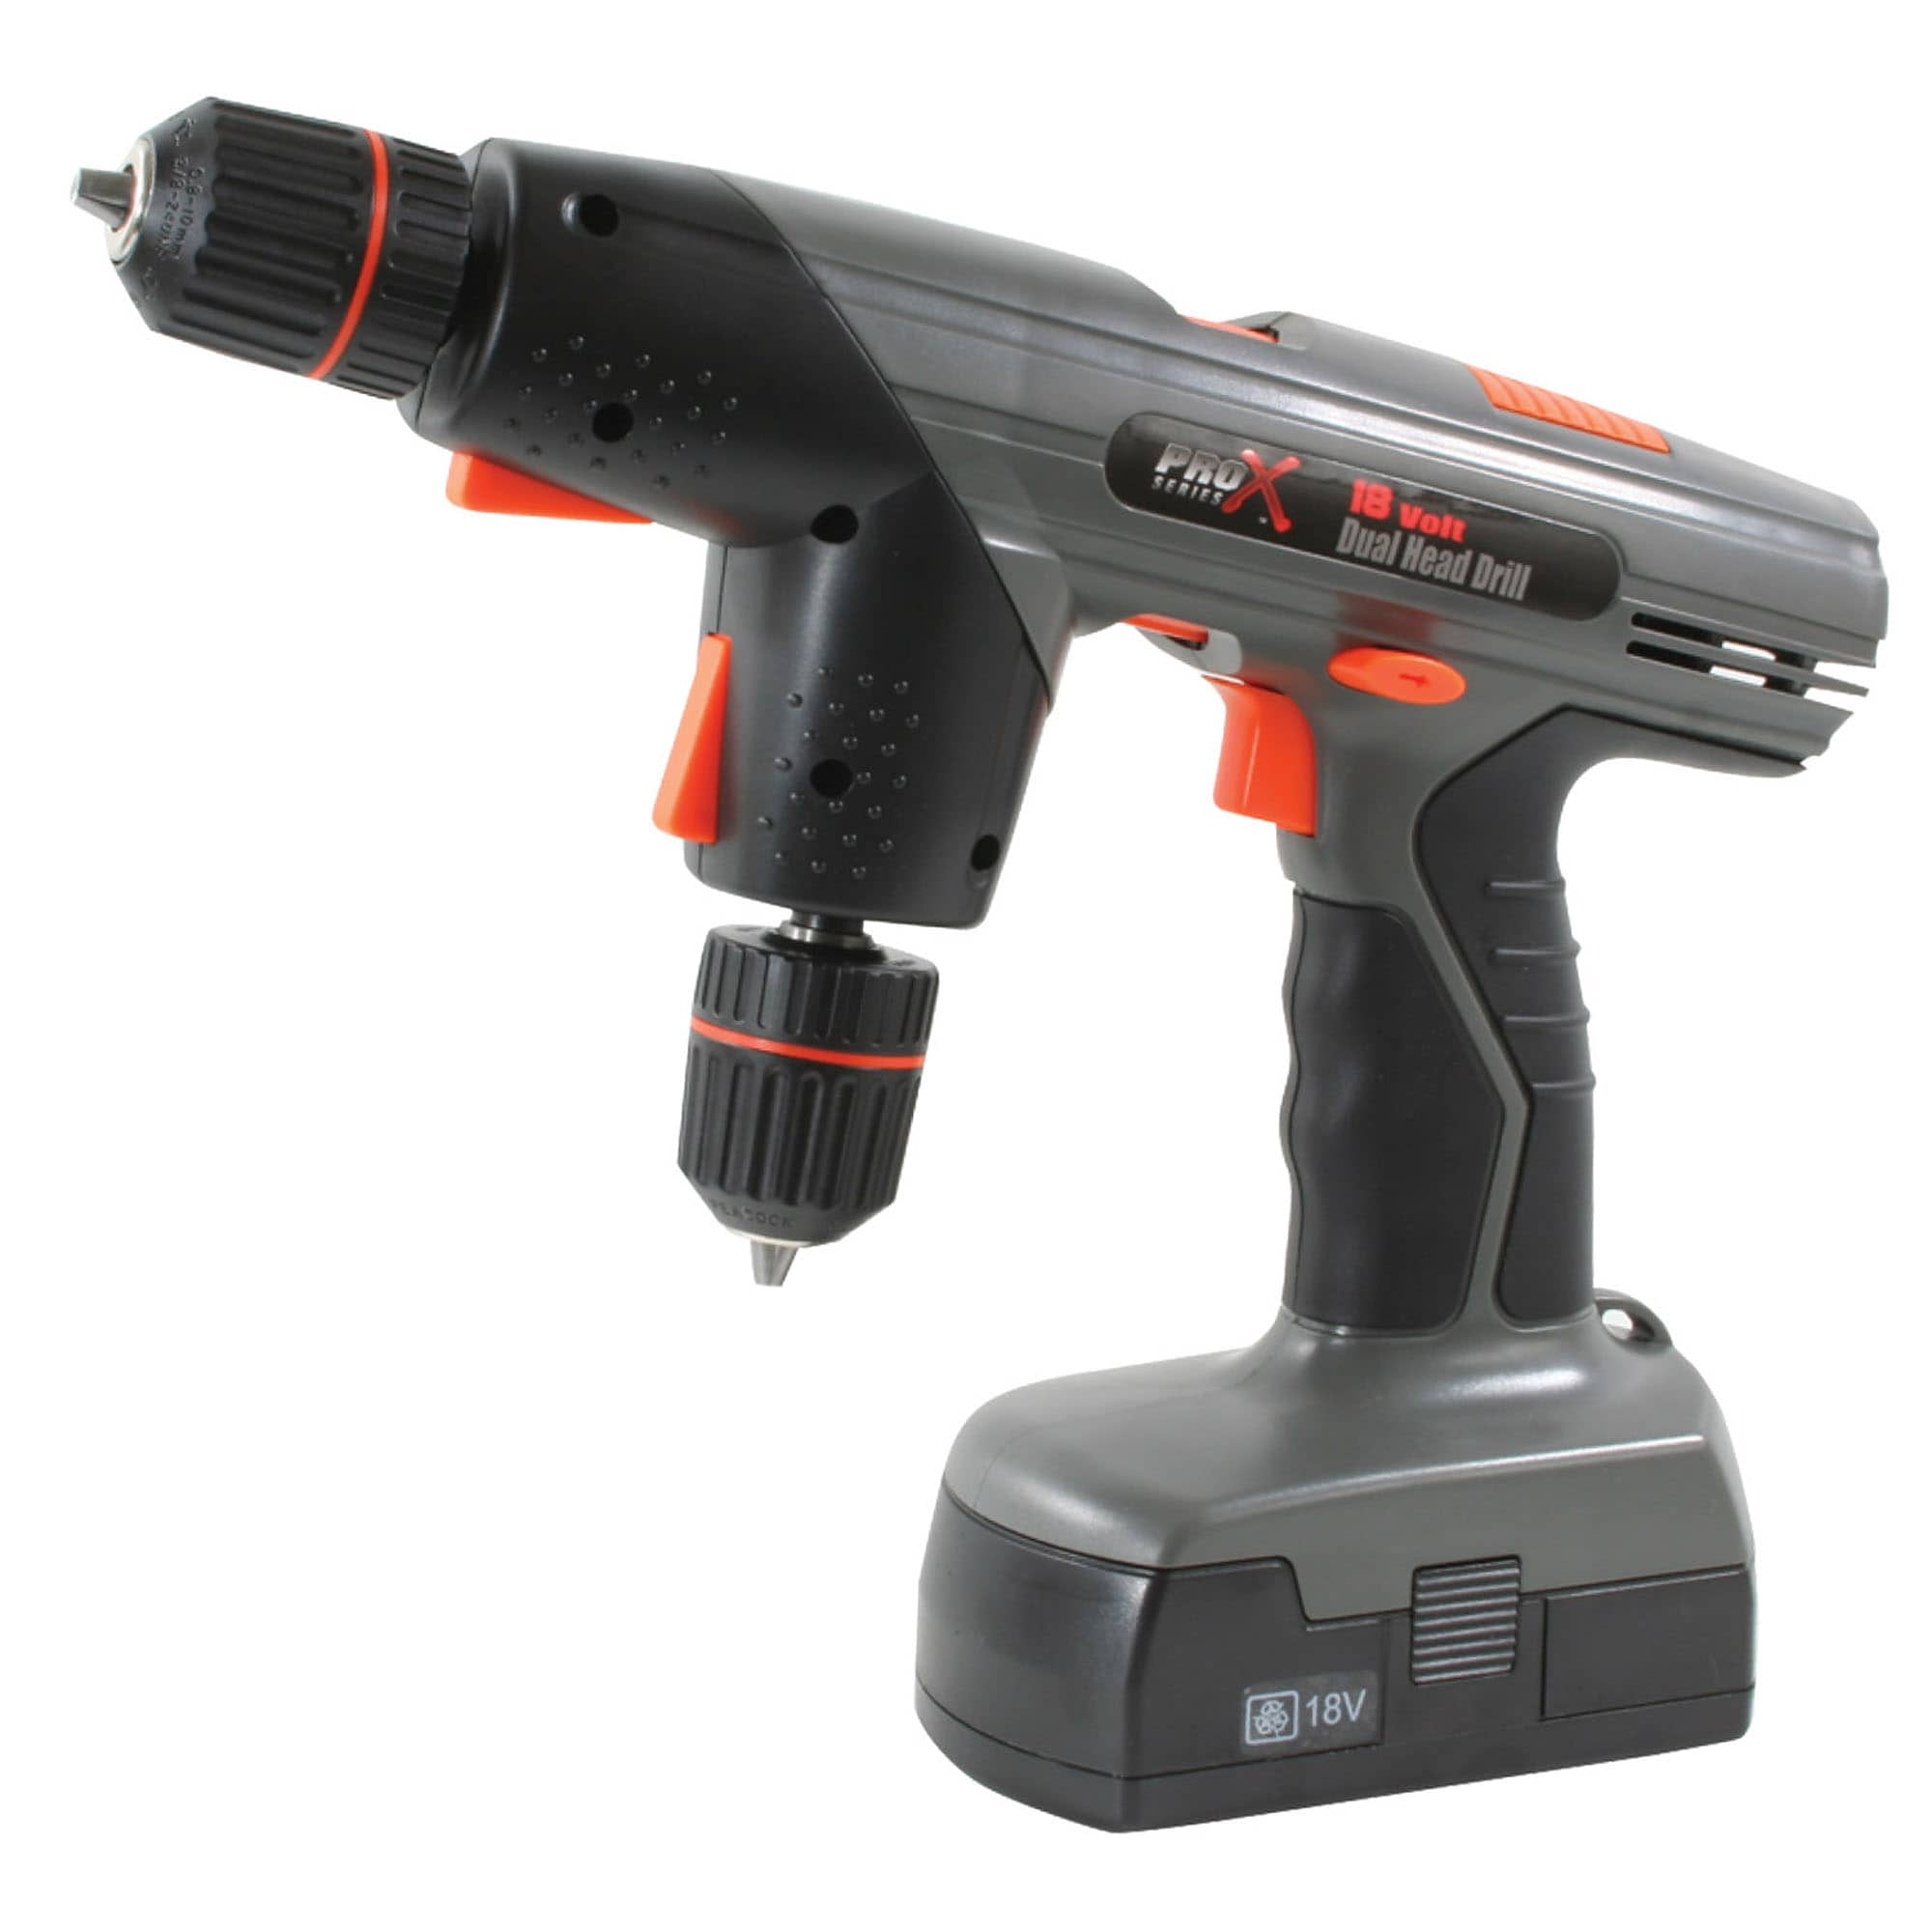 shop pro series x 18-volt dual-head drill - free shipping today